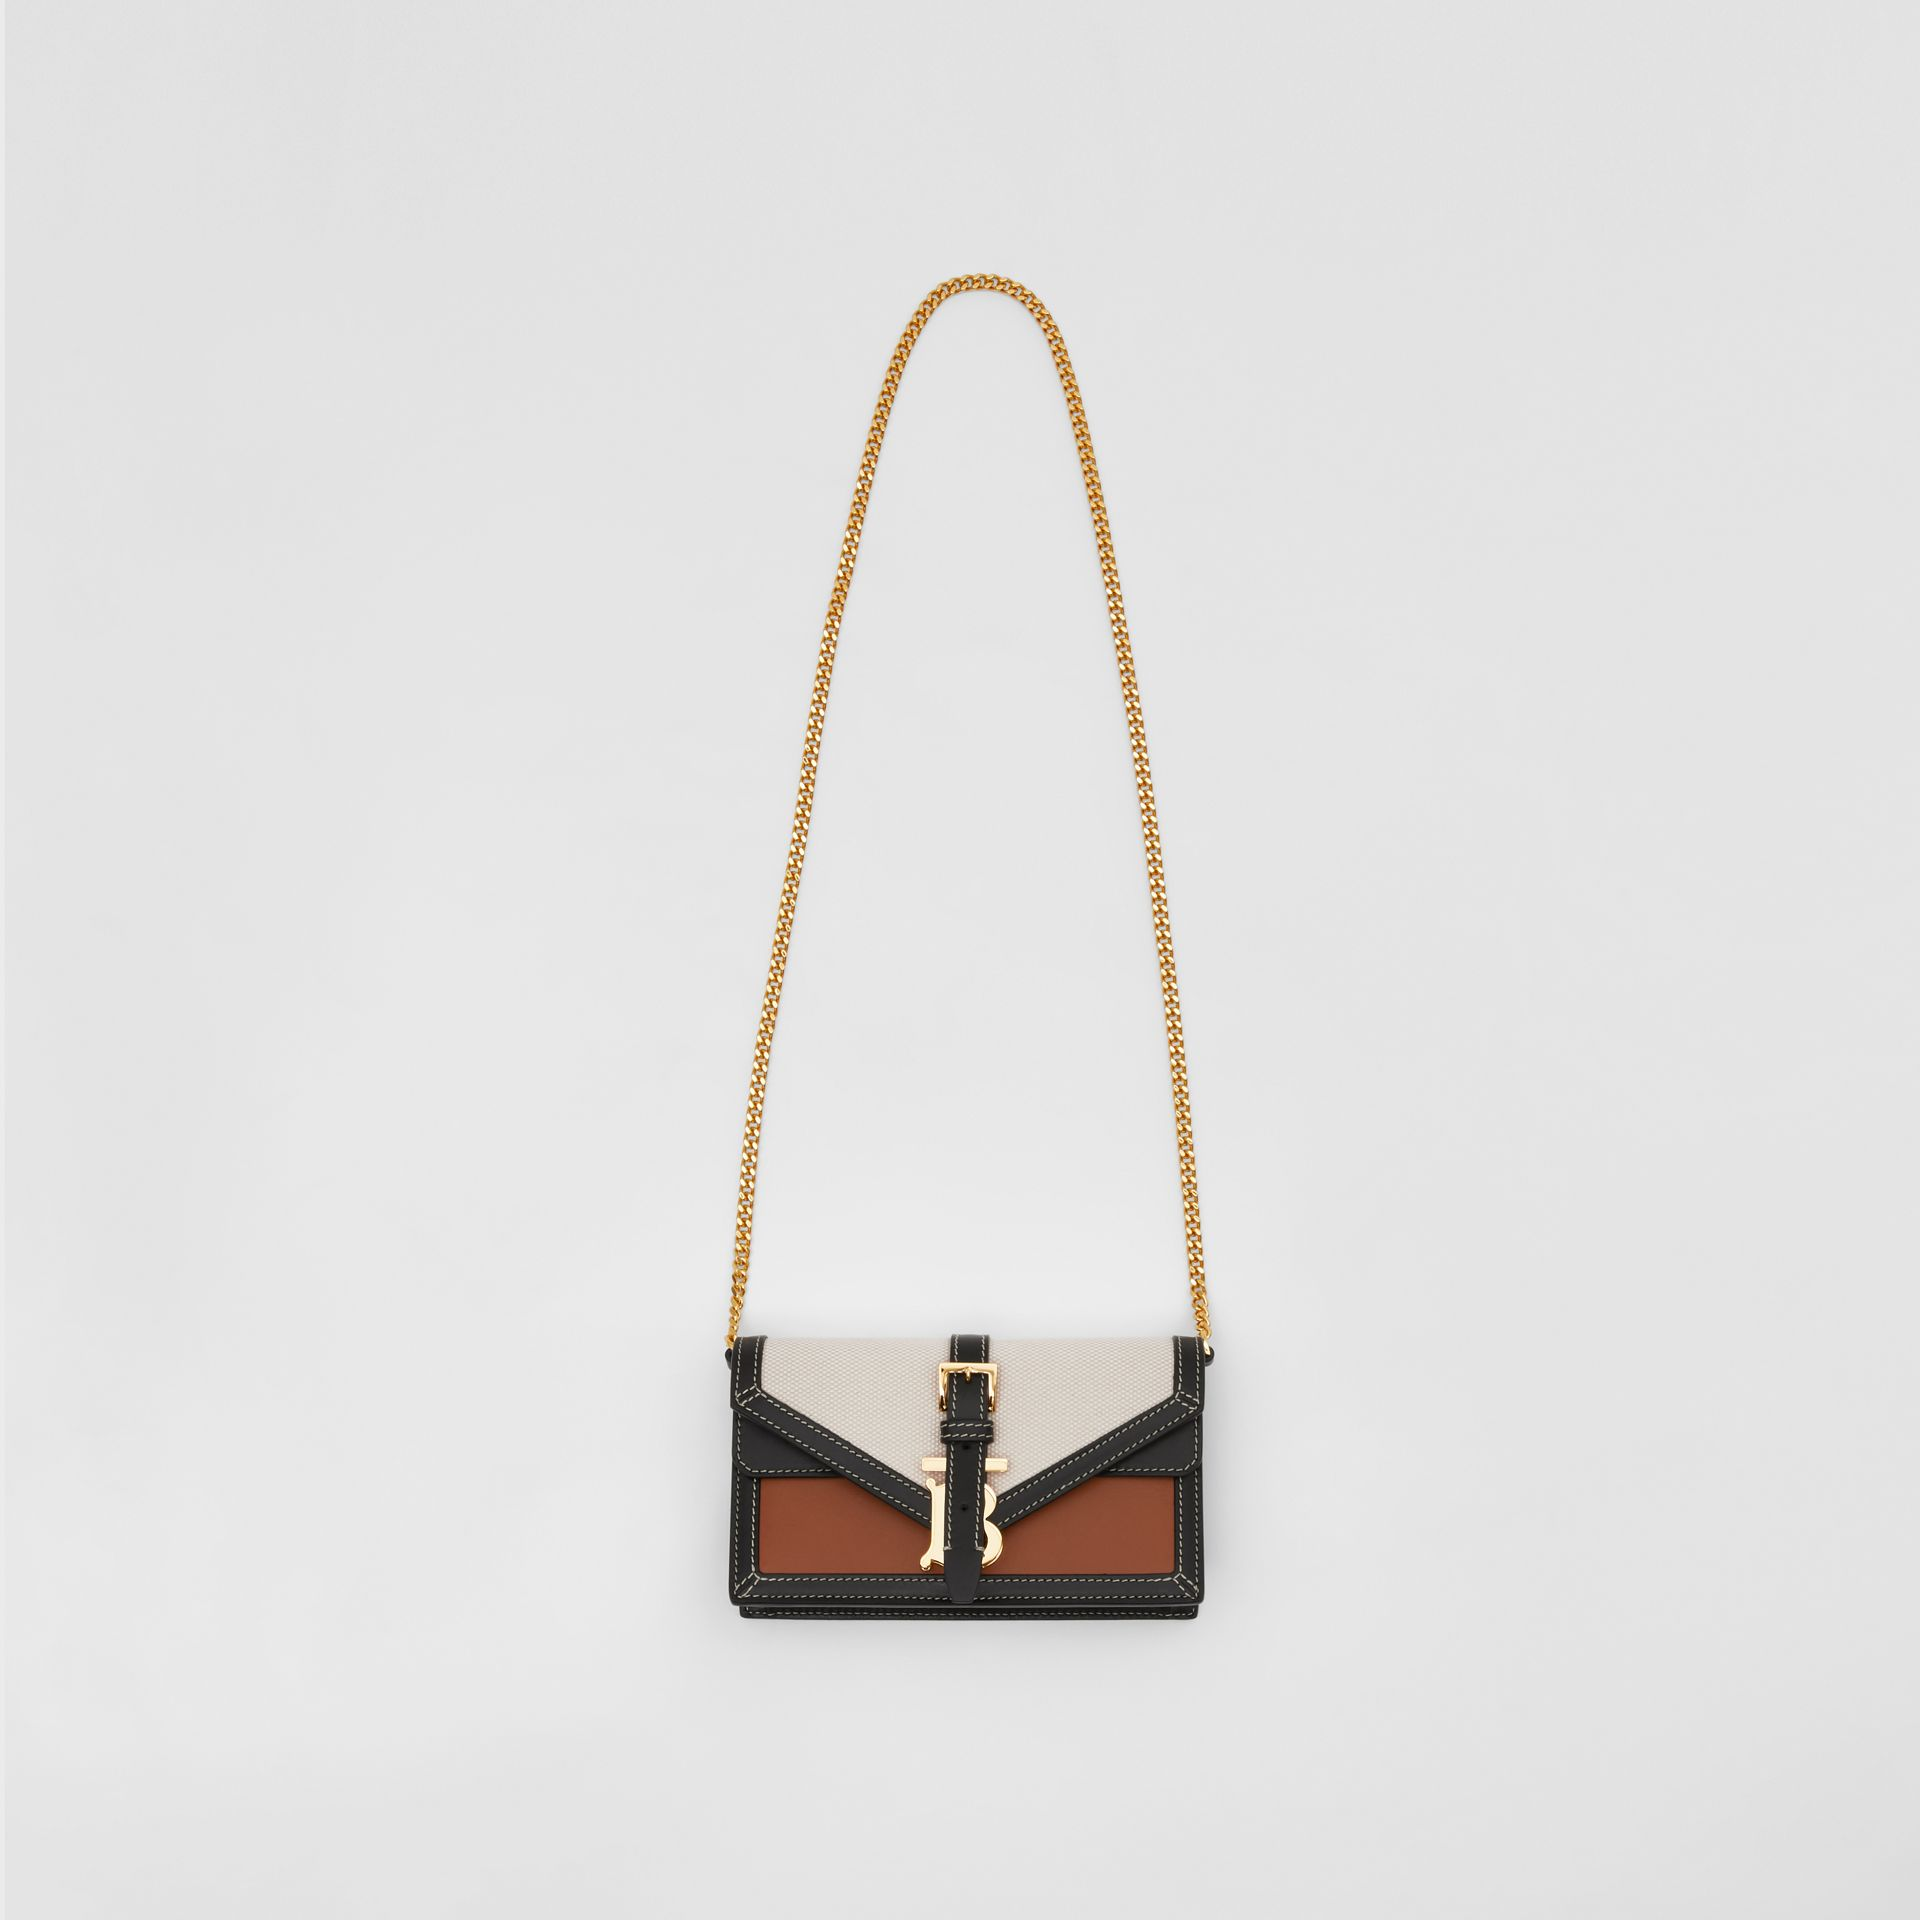 Mini Canvas and Leather TB Envelope Clutch in Tan - Women | Burberry - gallery image 2